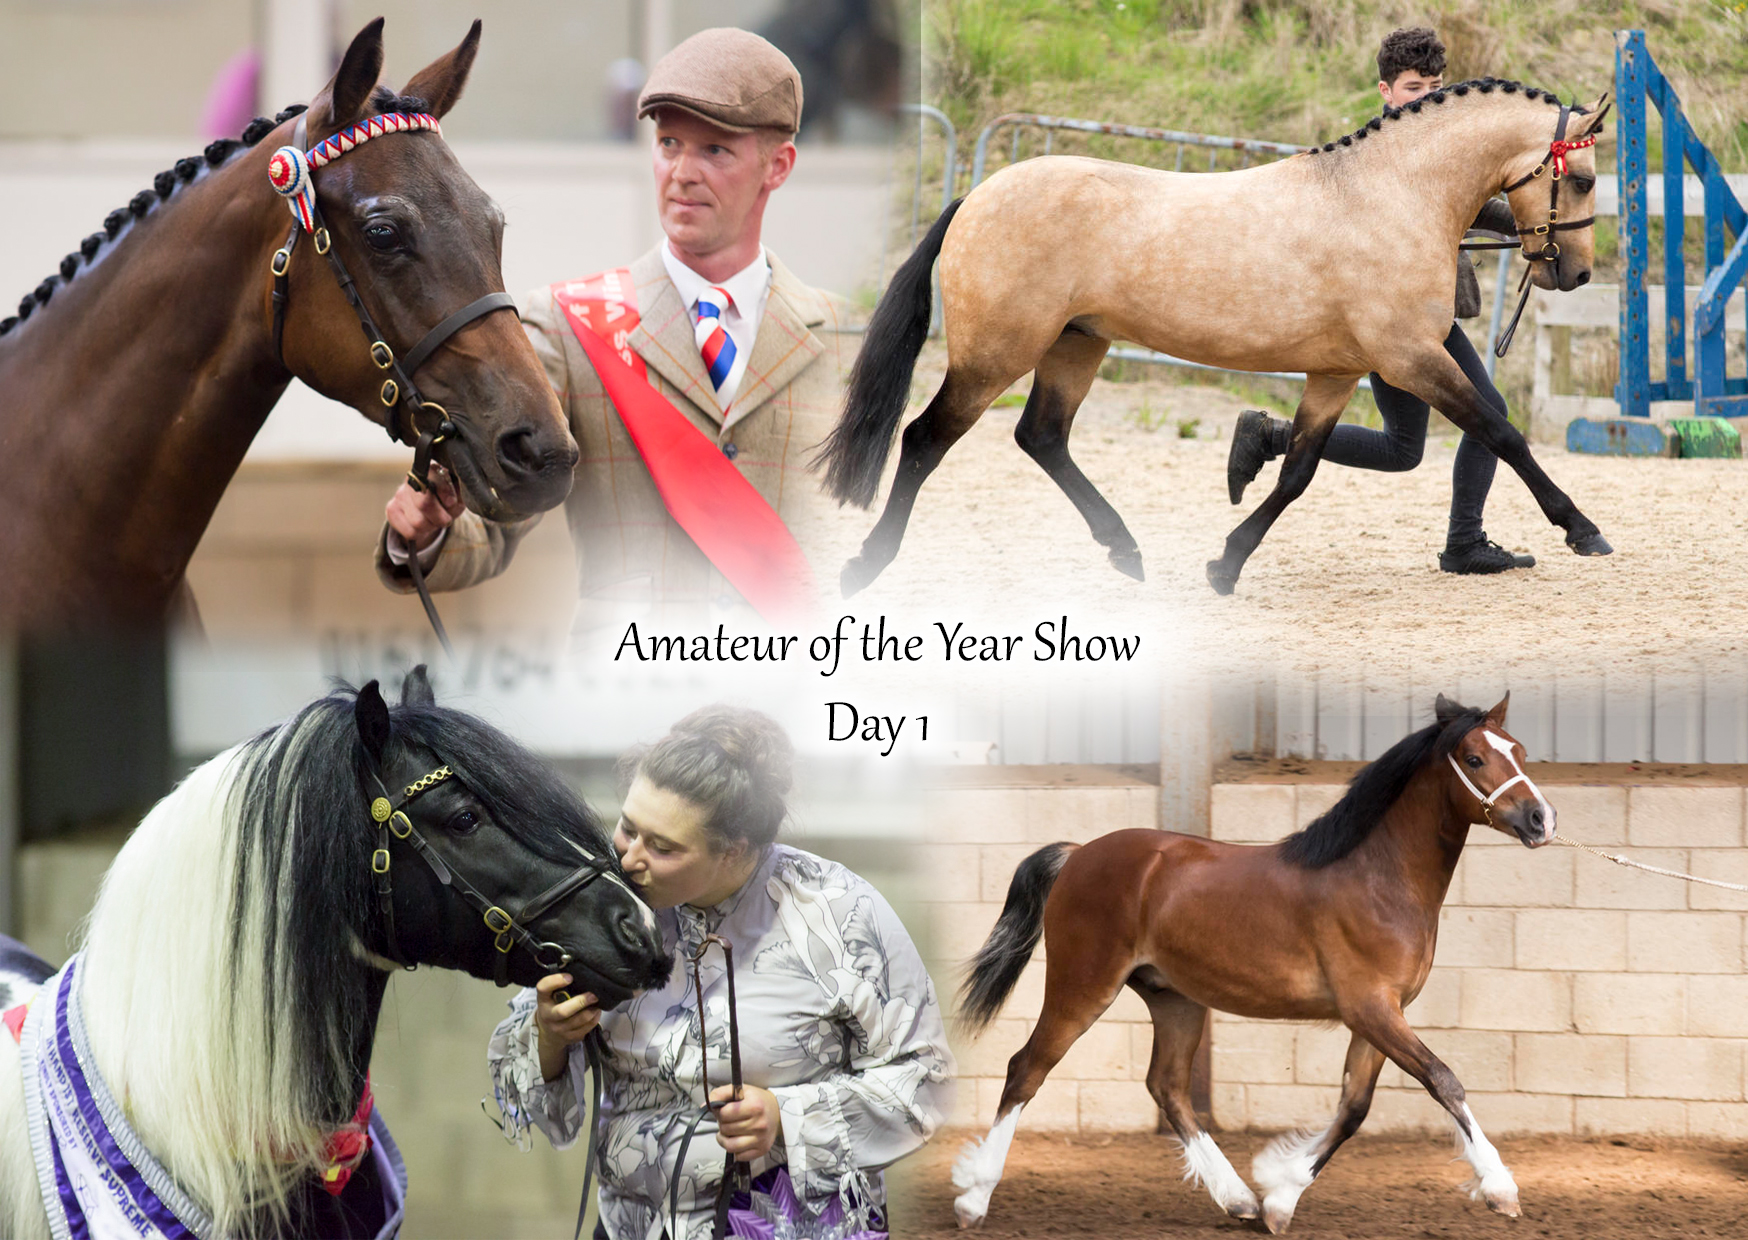 Amateur of the Year Show- Day 1